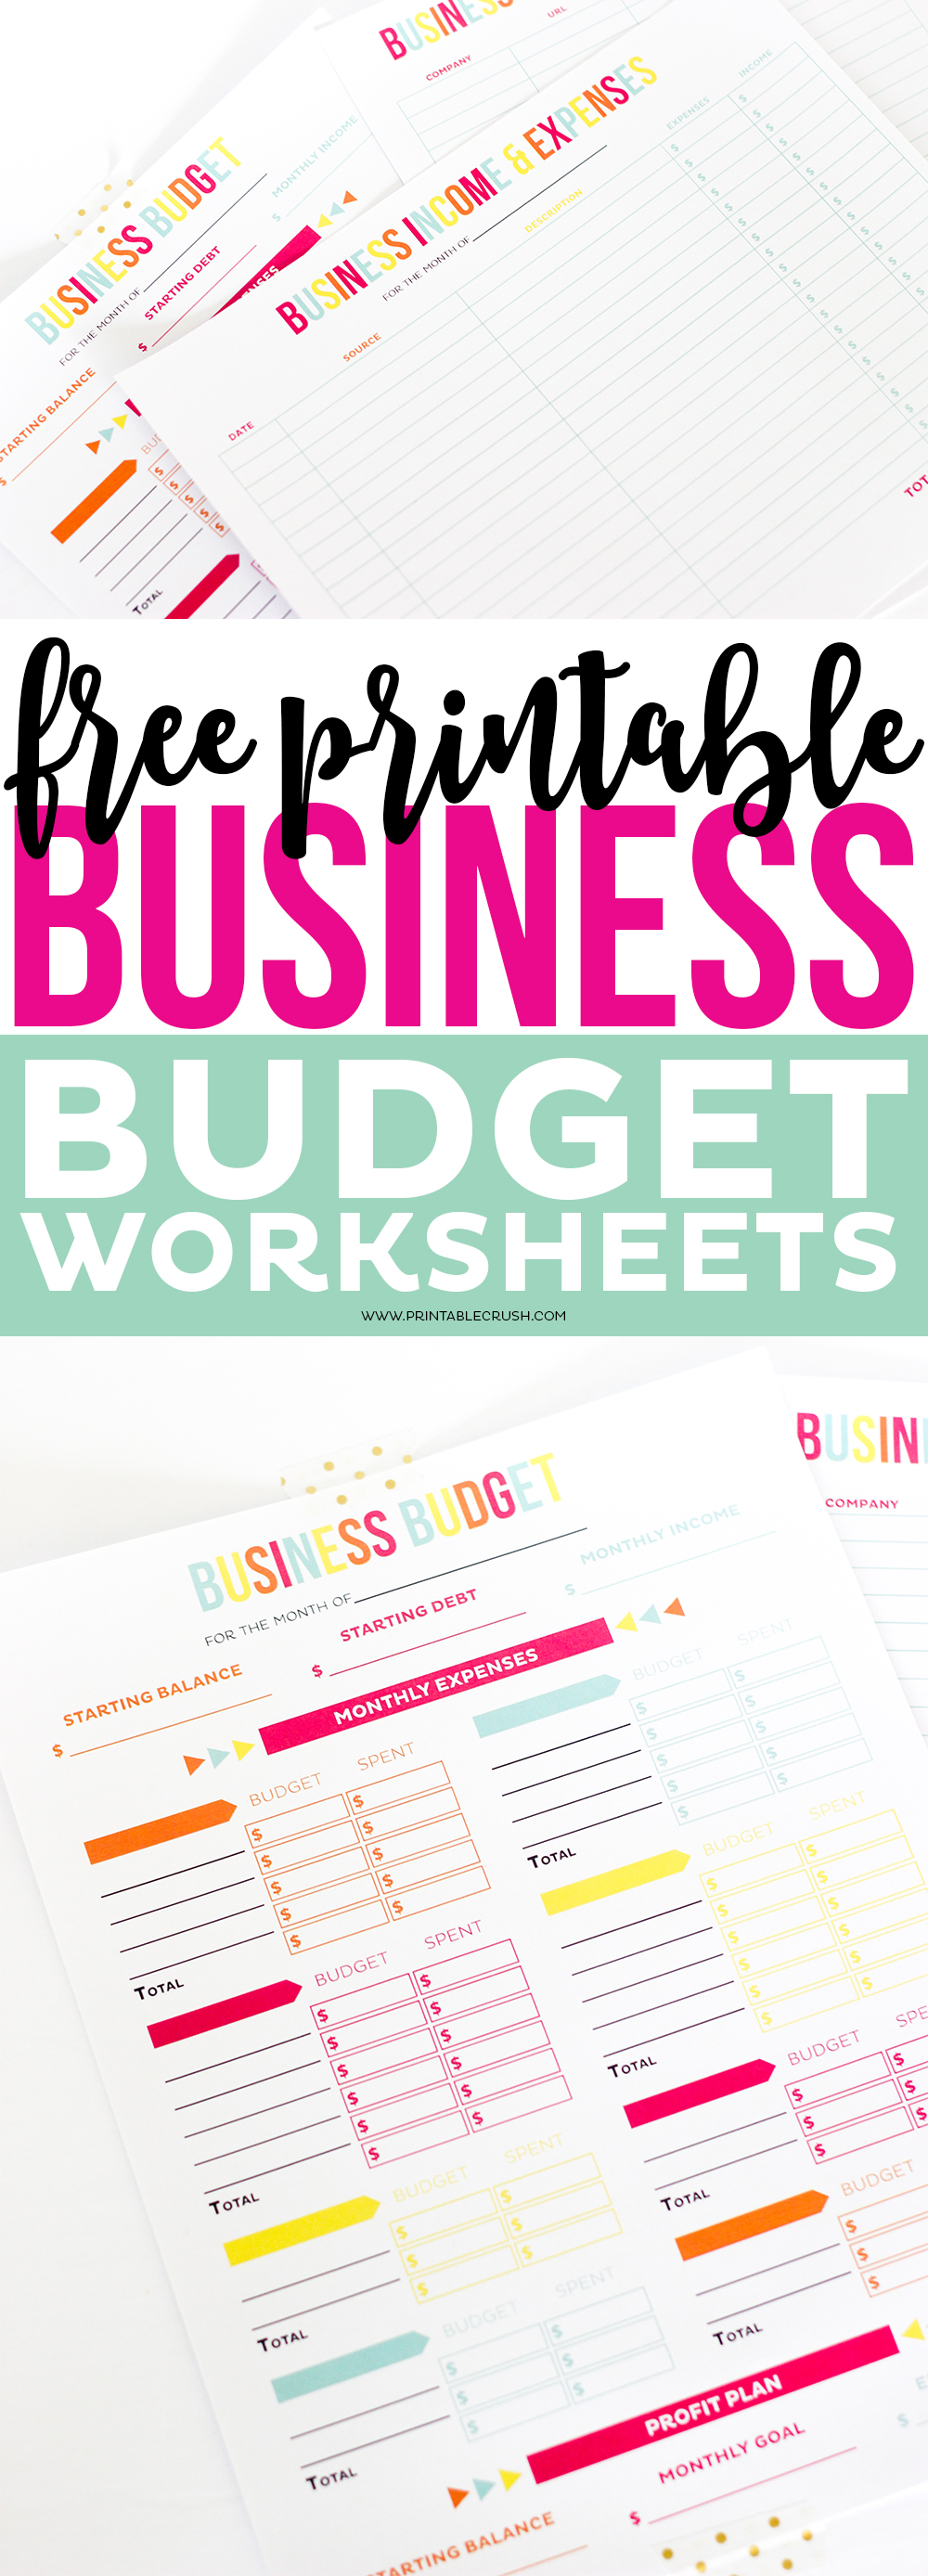 FREE Printable Business Budget Worksheets Printable Crush – Free Online Budget Worksheet